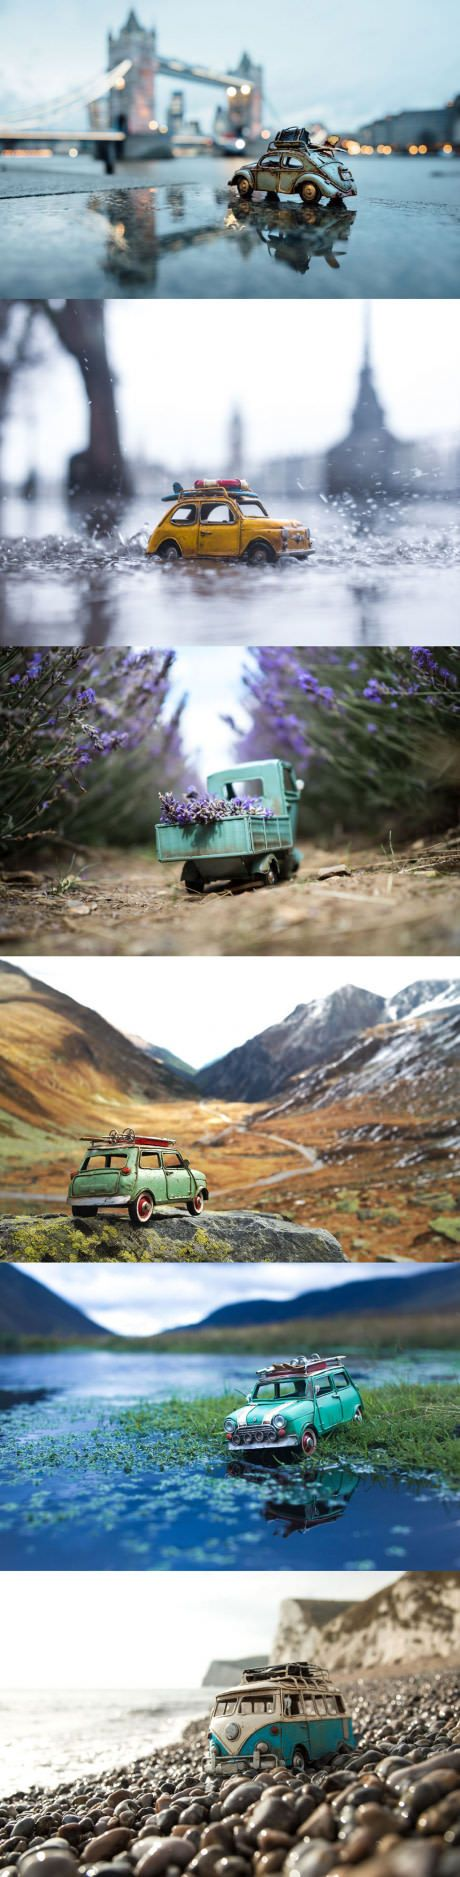 Traveling Cars Adventures by Kim Leuenberger ・ | Awesome loーdown, angle, and concept!